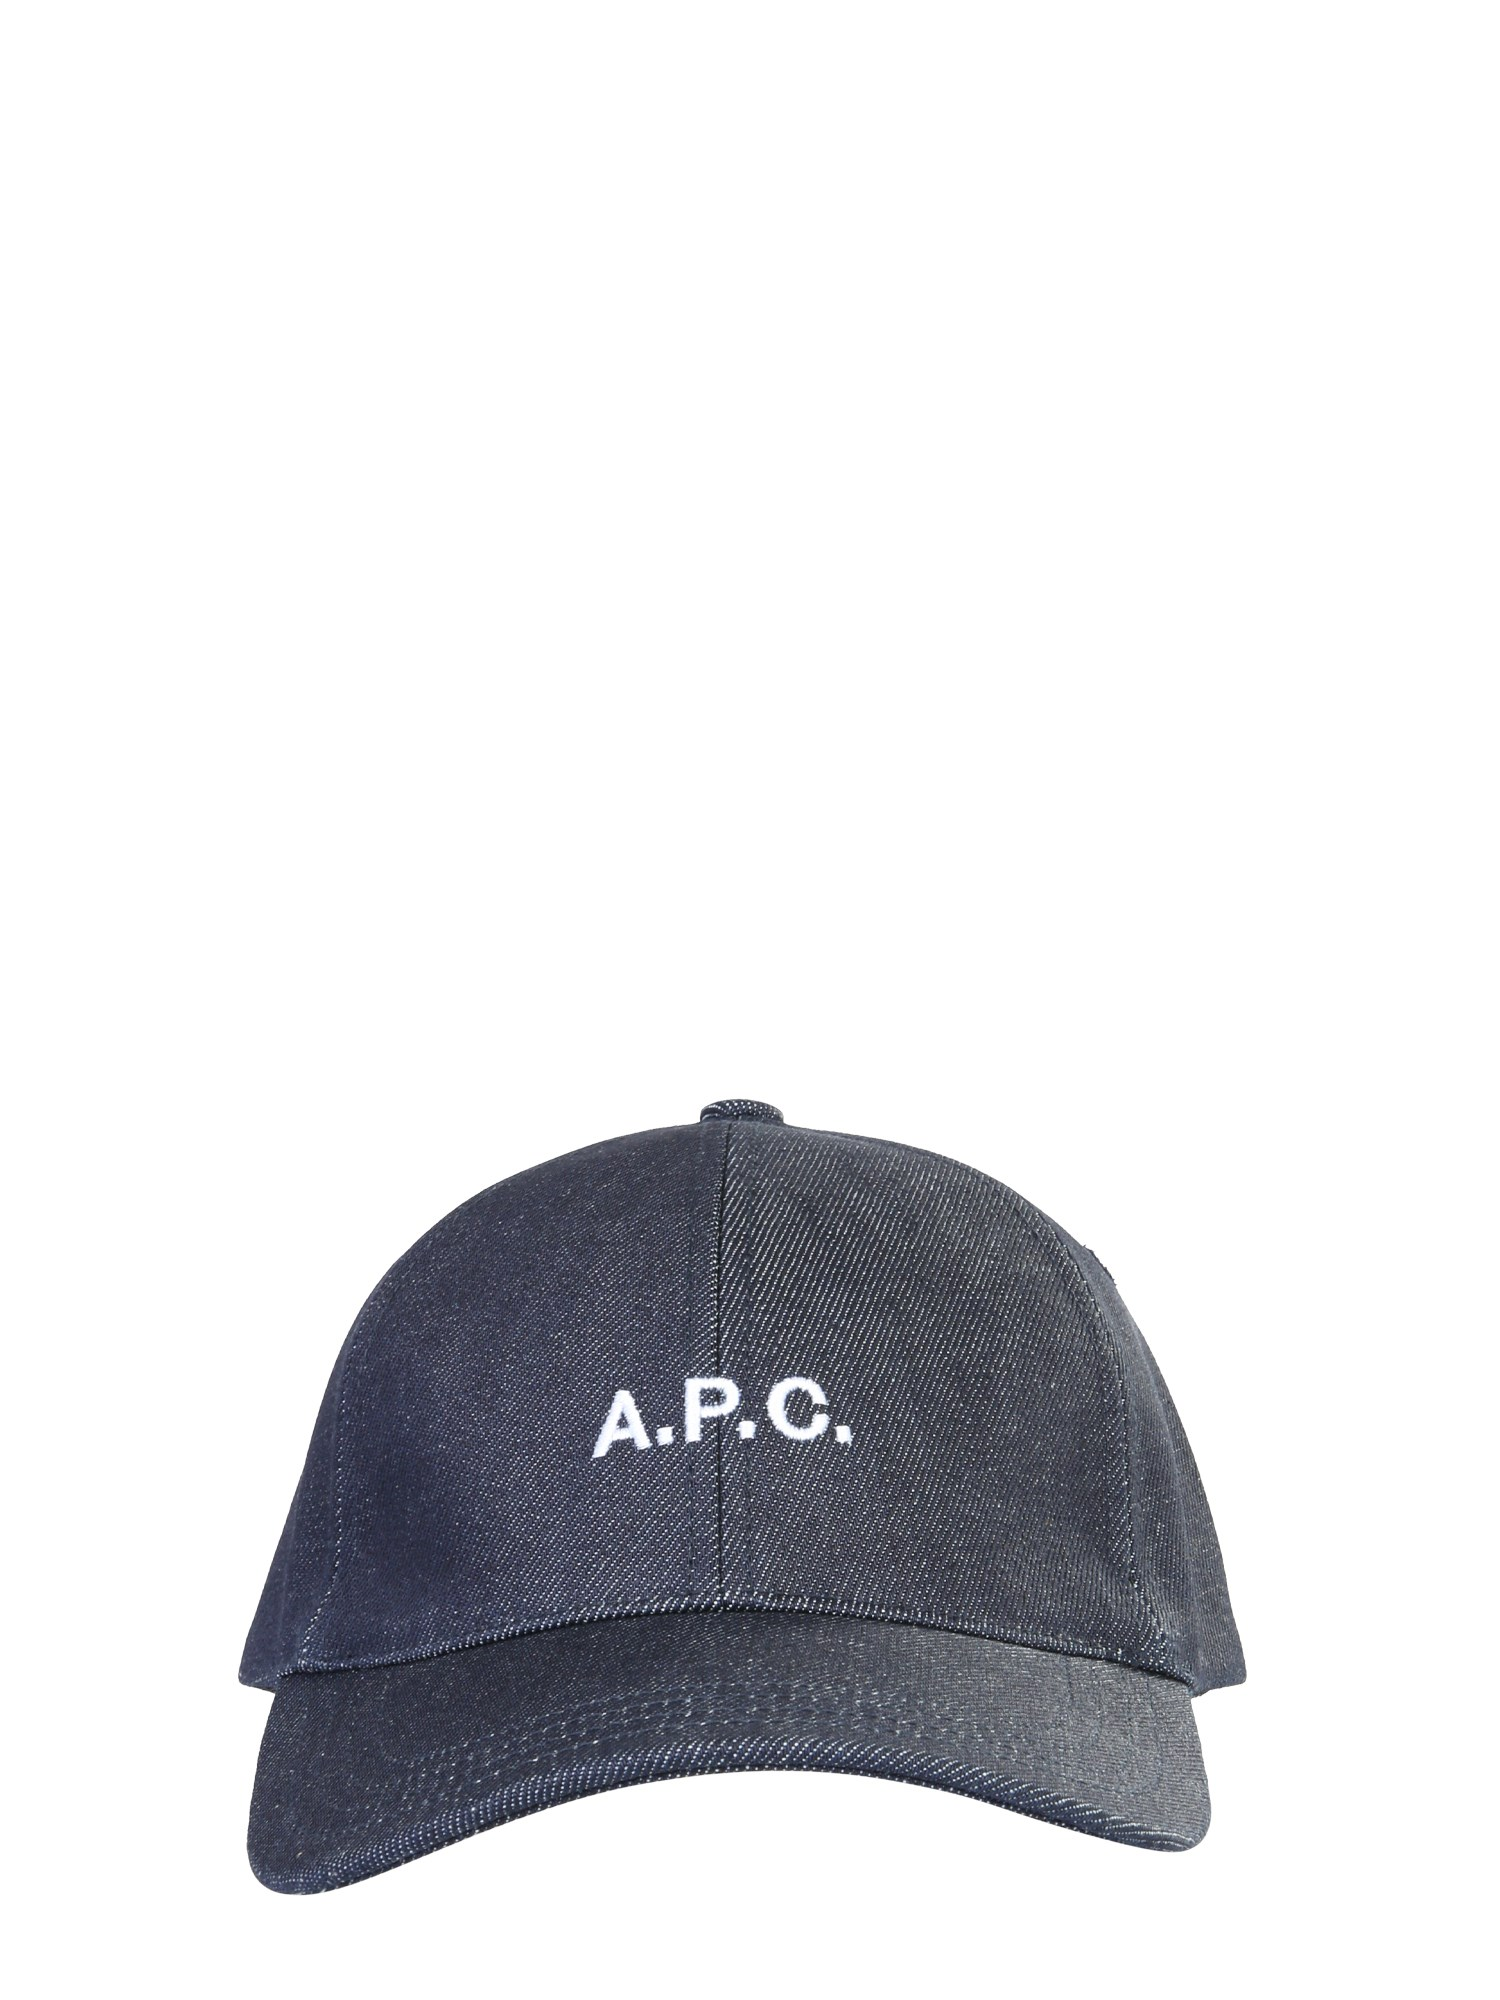 A.p.c. Accessories CHARLIE BASEBALL HAT